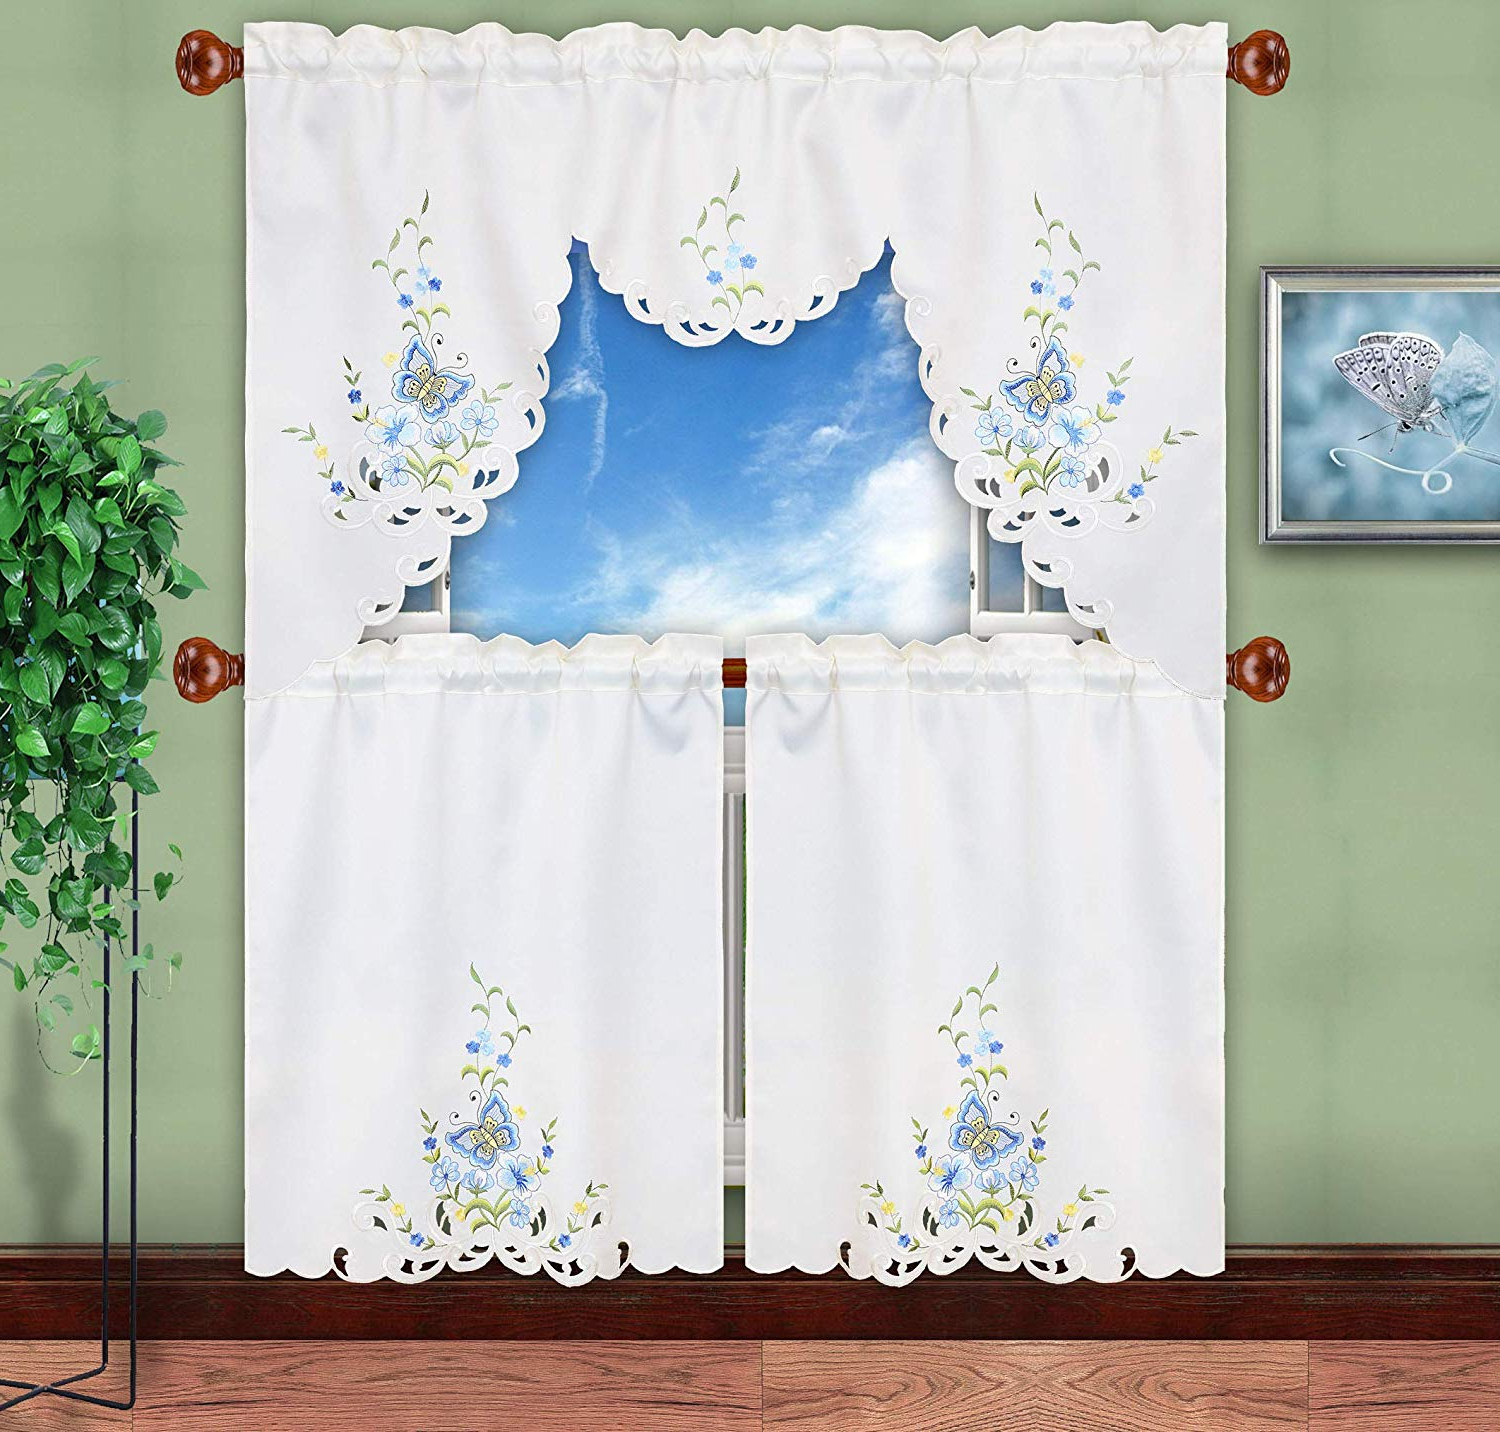 Recent Simhomsen Embroidered Butterfly Kitchen Curtain Swag And Tiers Set For  Spring And Summer, Window Treatment, Decorations (Blue) Within Cotton Blend Ivy Floral Tier Curtain And Swag Sets (Gallery 16 of 20)